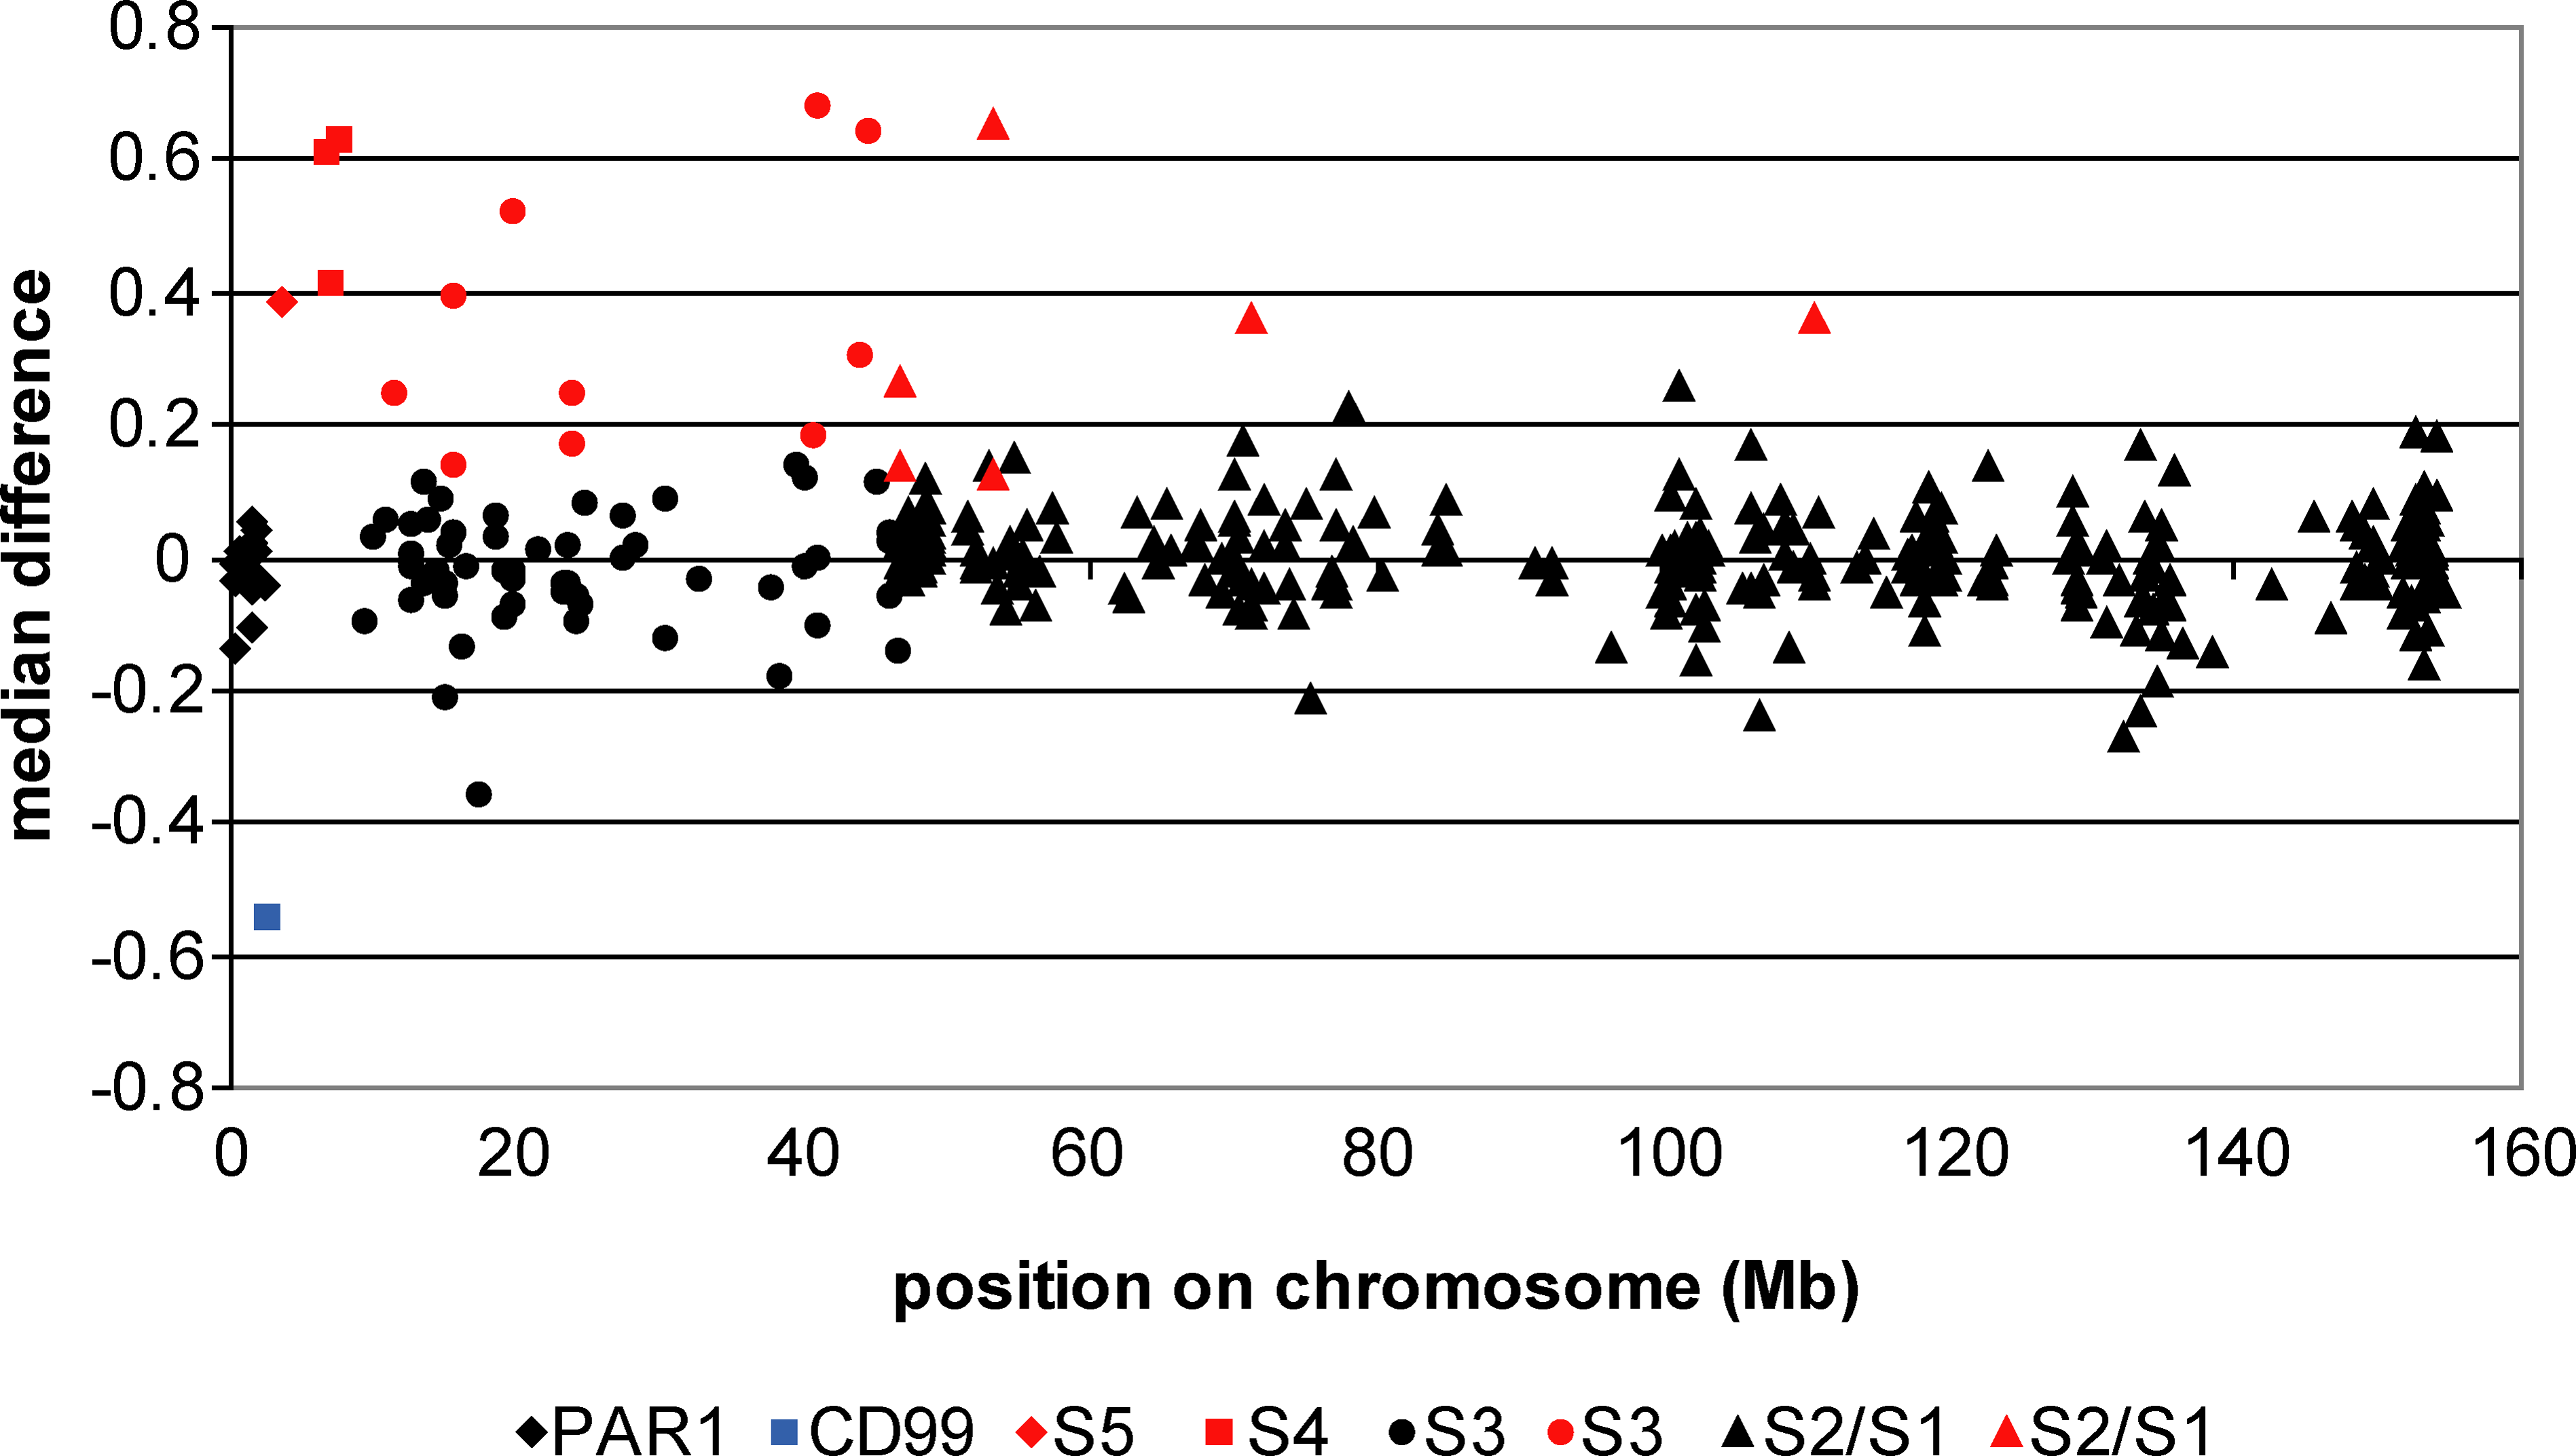 Genes Expressed More Highly in Females Are Distributed Non-Randomly on the X Chromosome